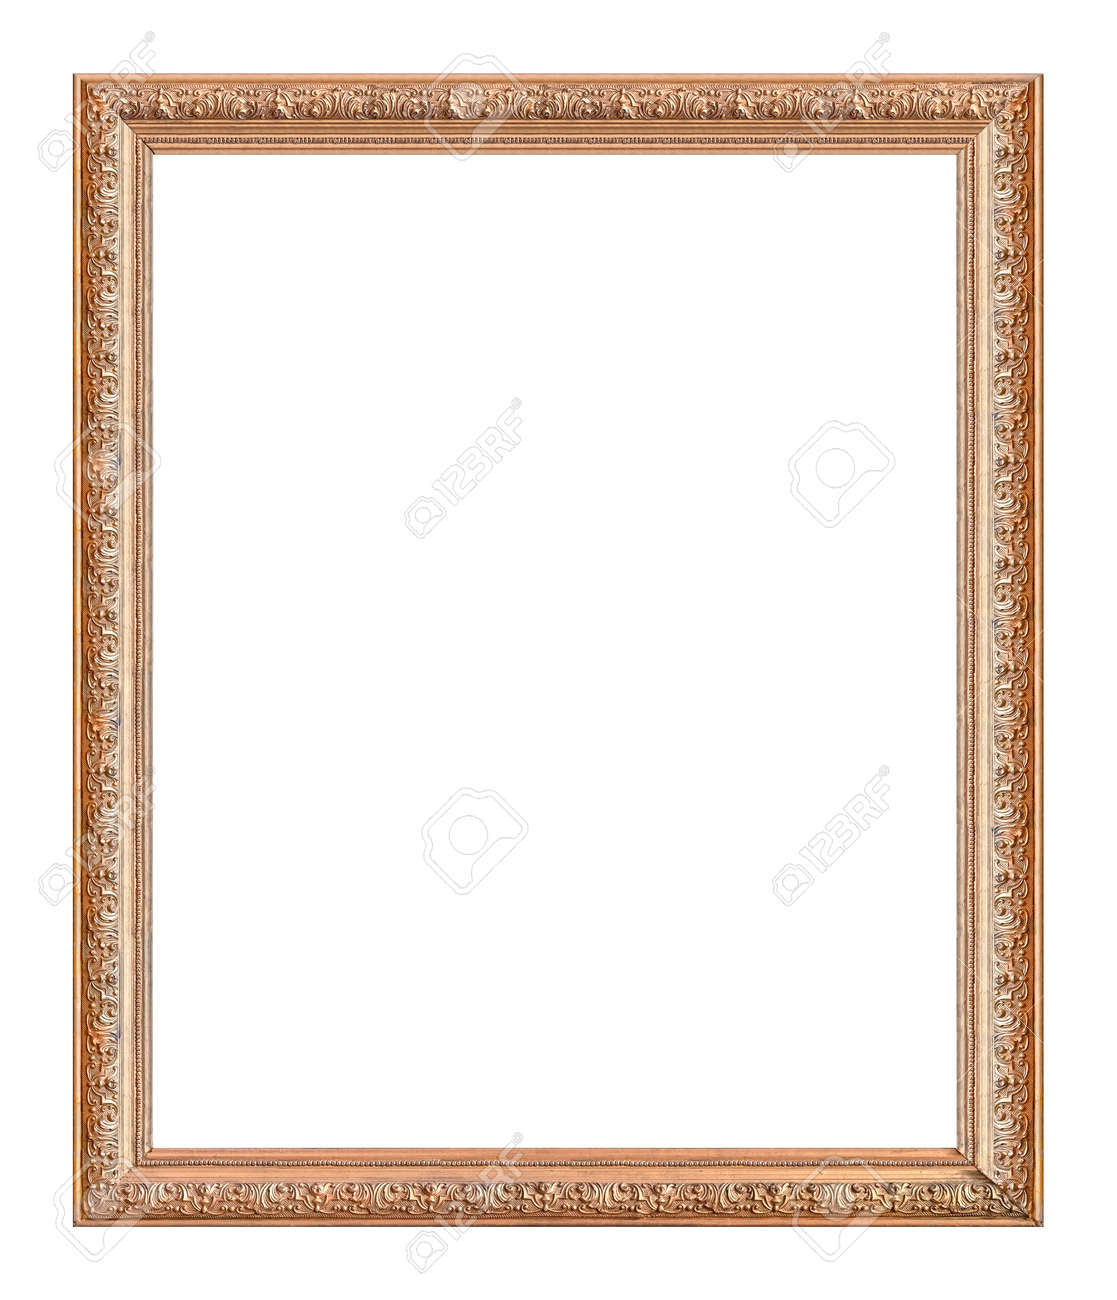 Golden frame for paintings, mirrors or photo isolated on white background - 155313415